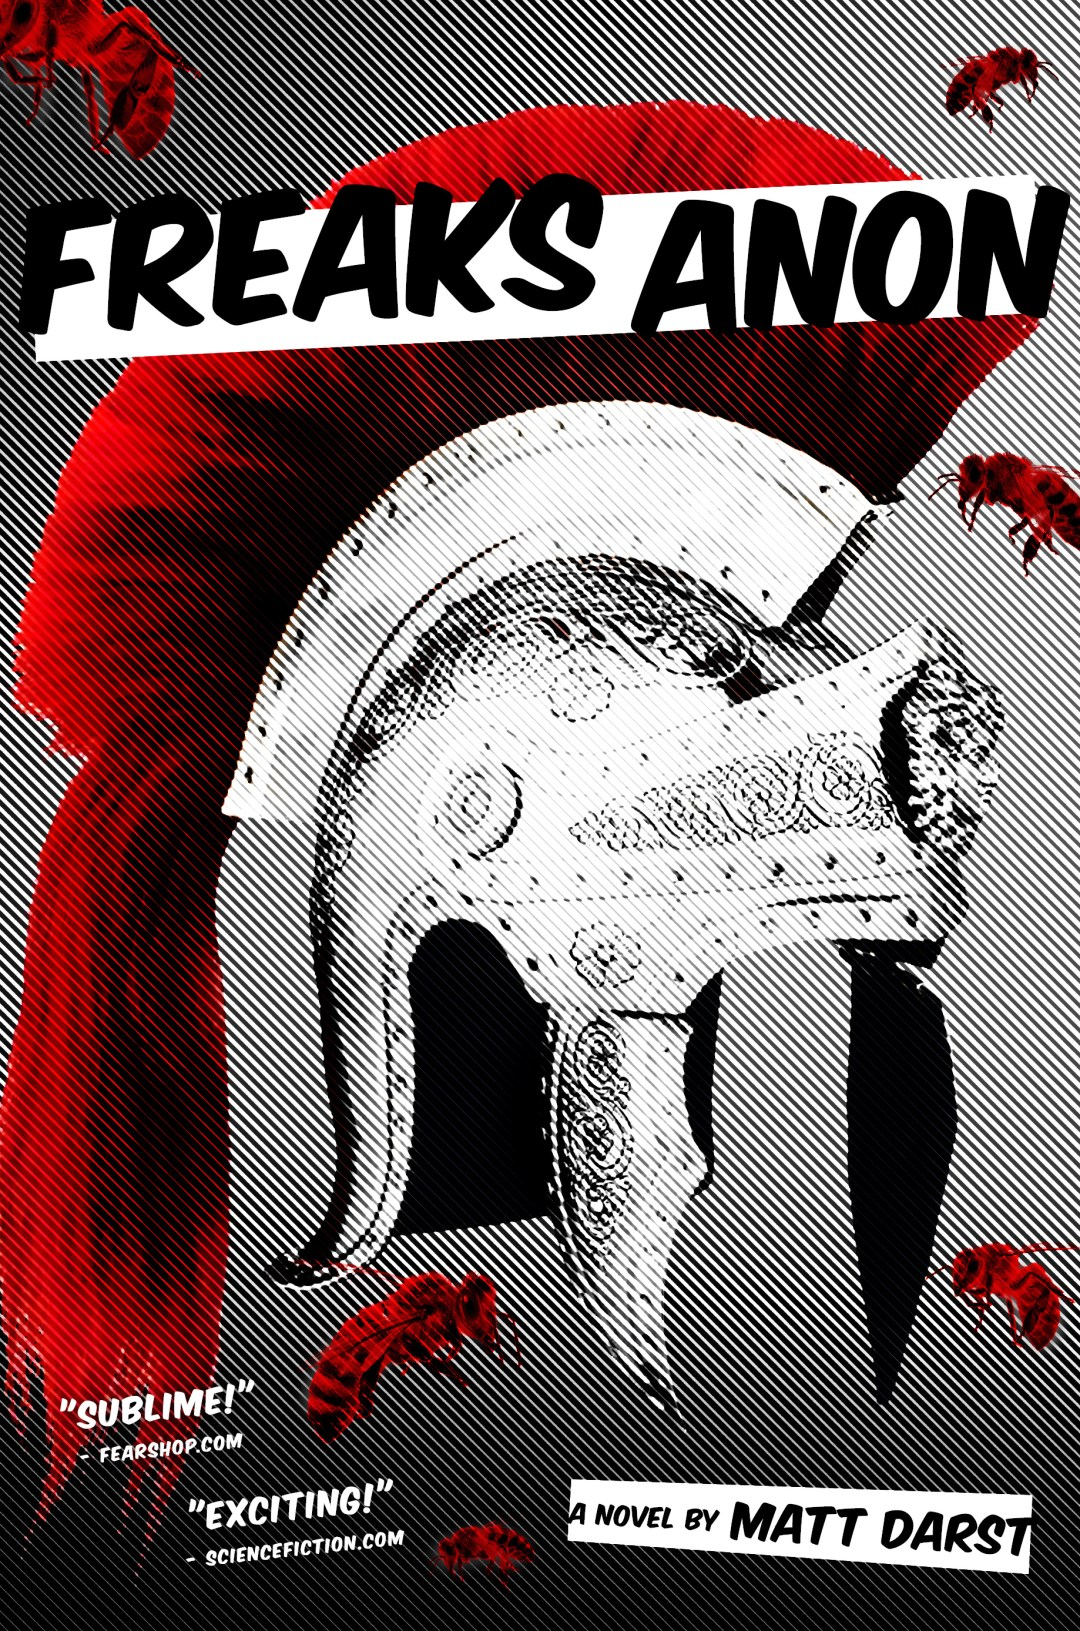 Help Celebrate the Release of 'Freaks Anon' – Enter to Win a Signed Copy!